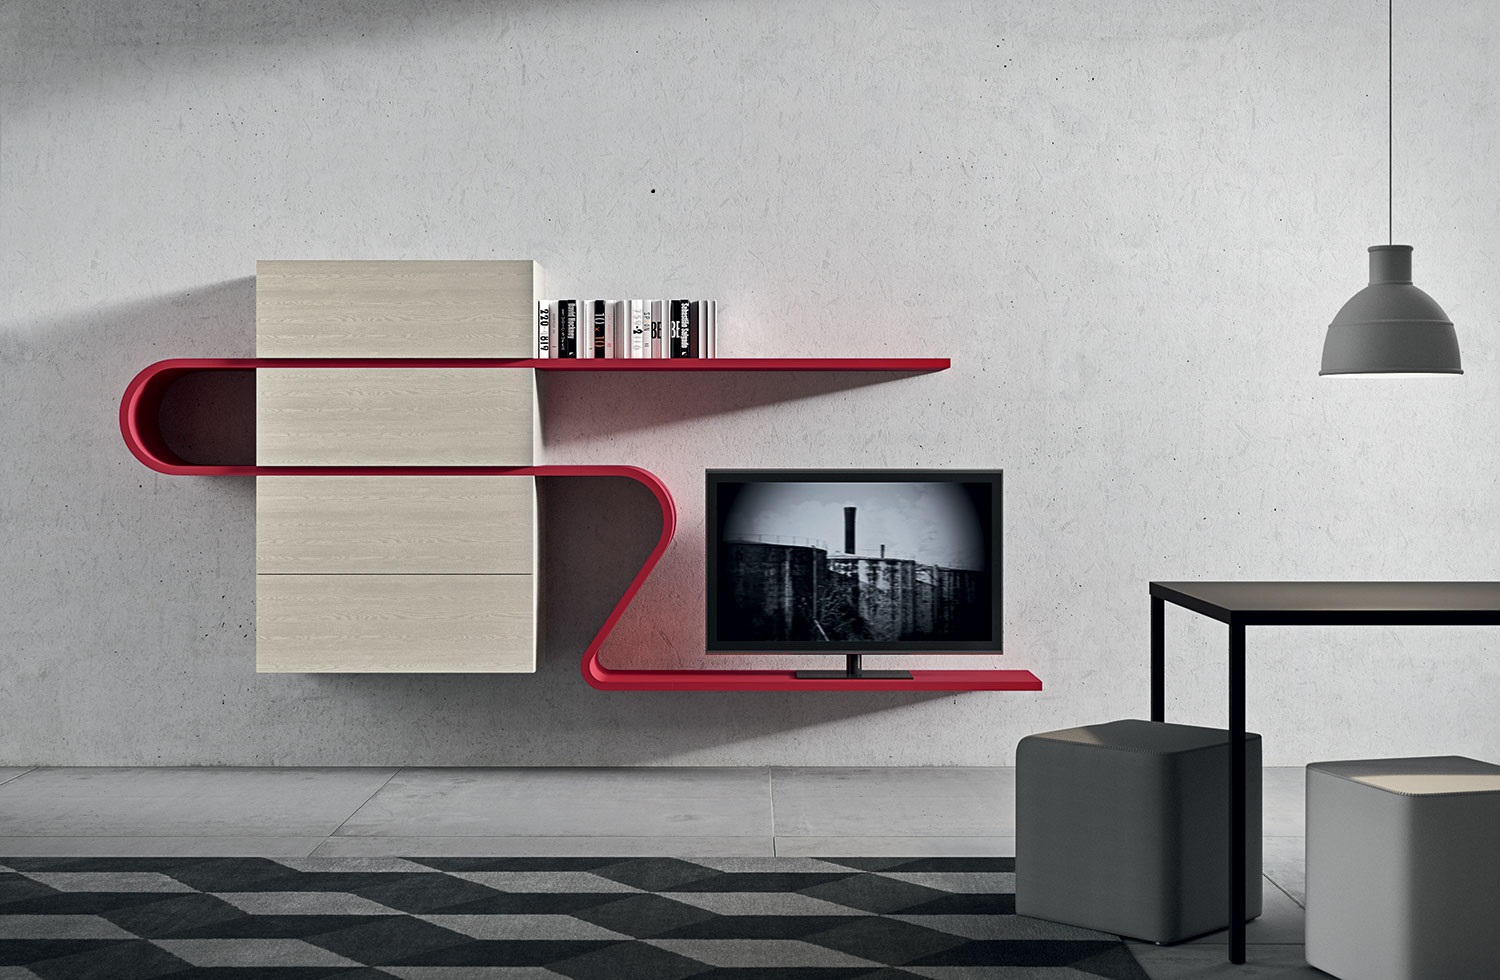 meuble wave novamobili par vestibule paris novamobili. Black Bedroom Furniture Sets. Home Design Ideas